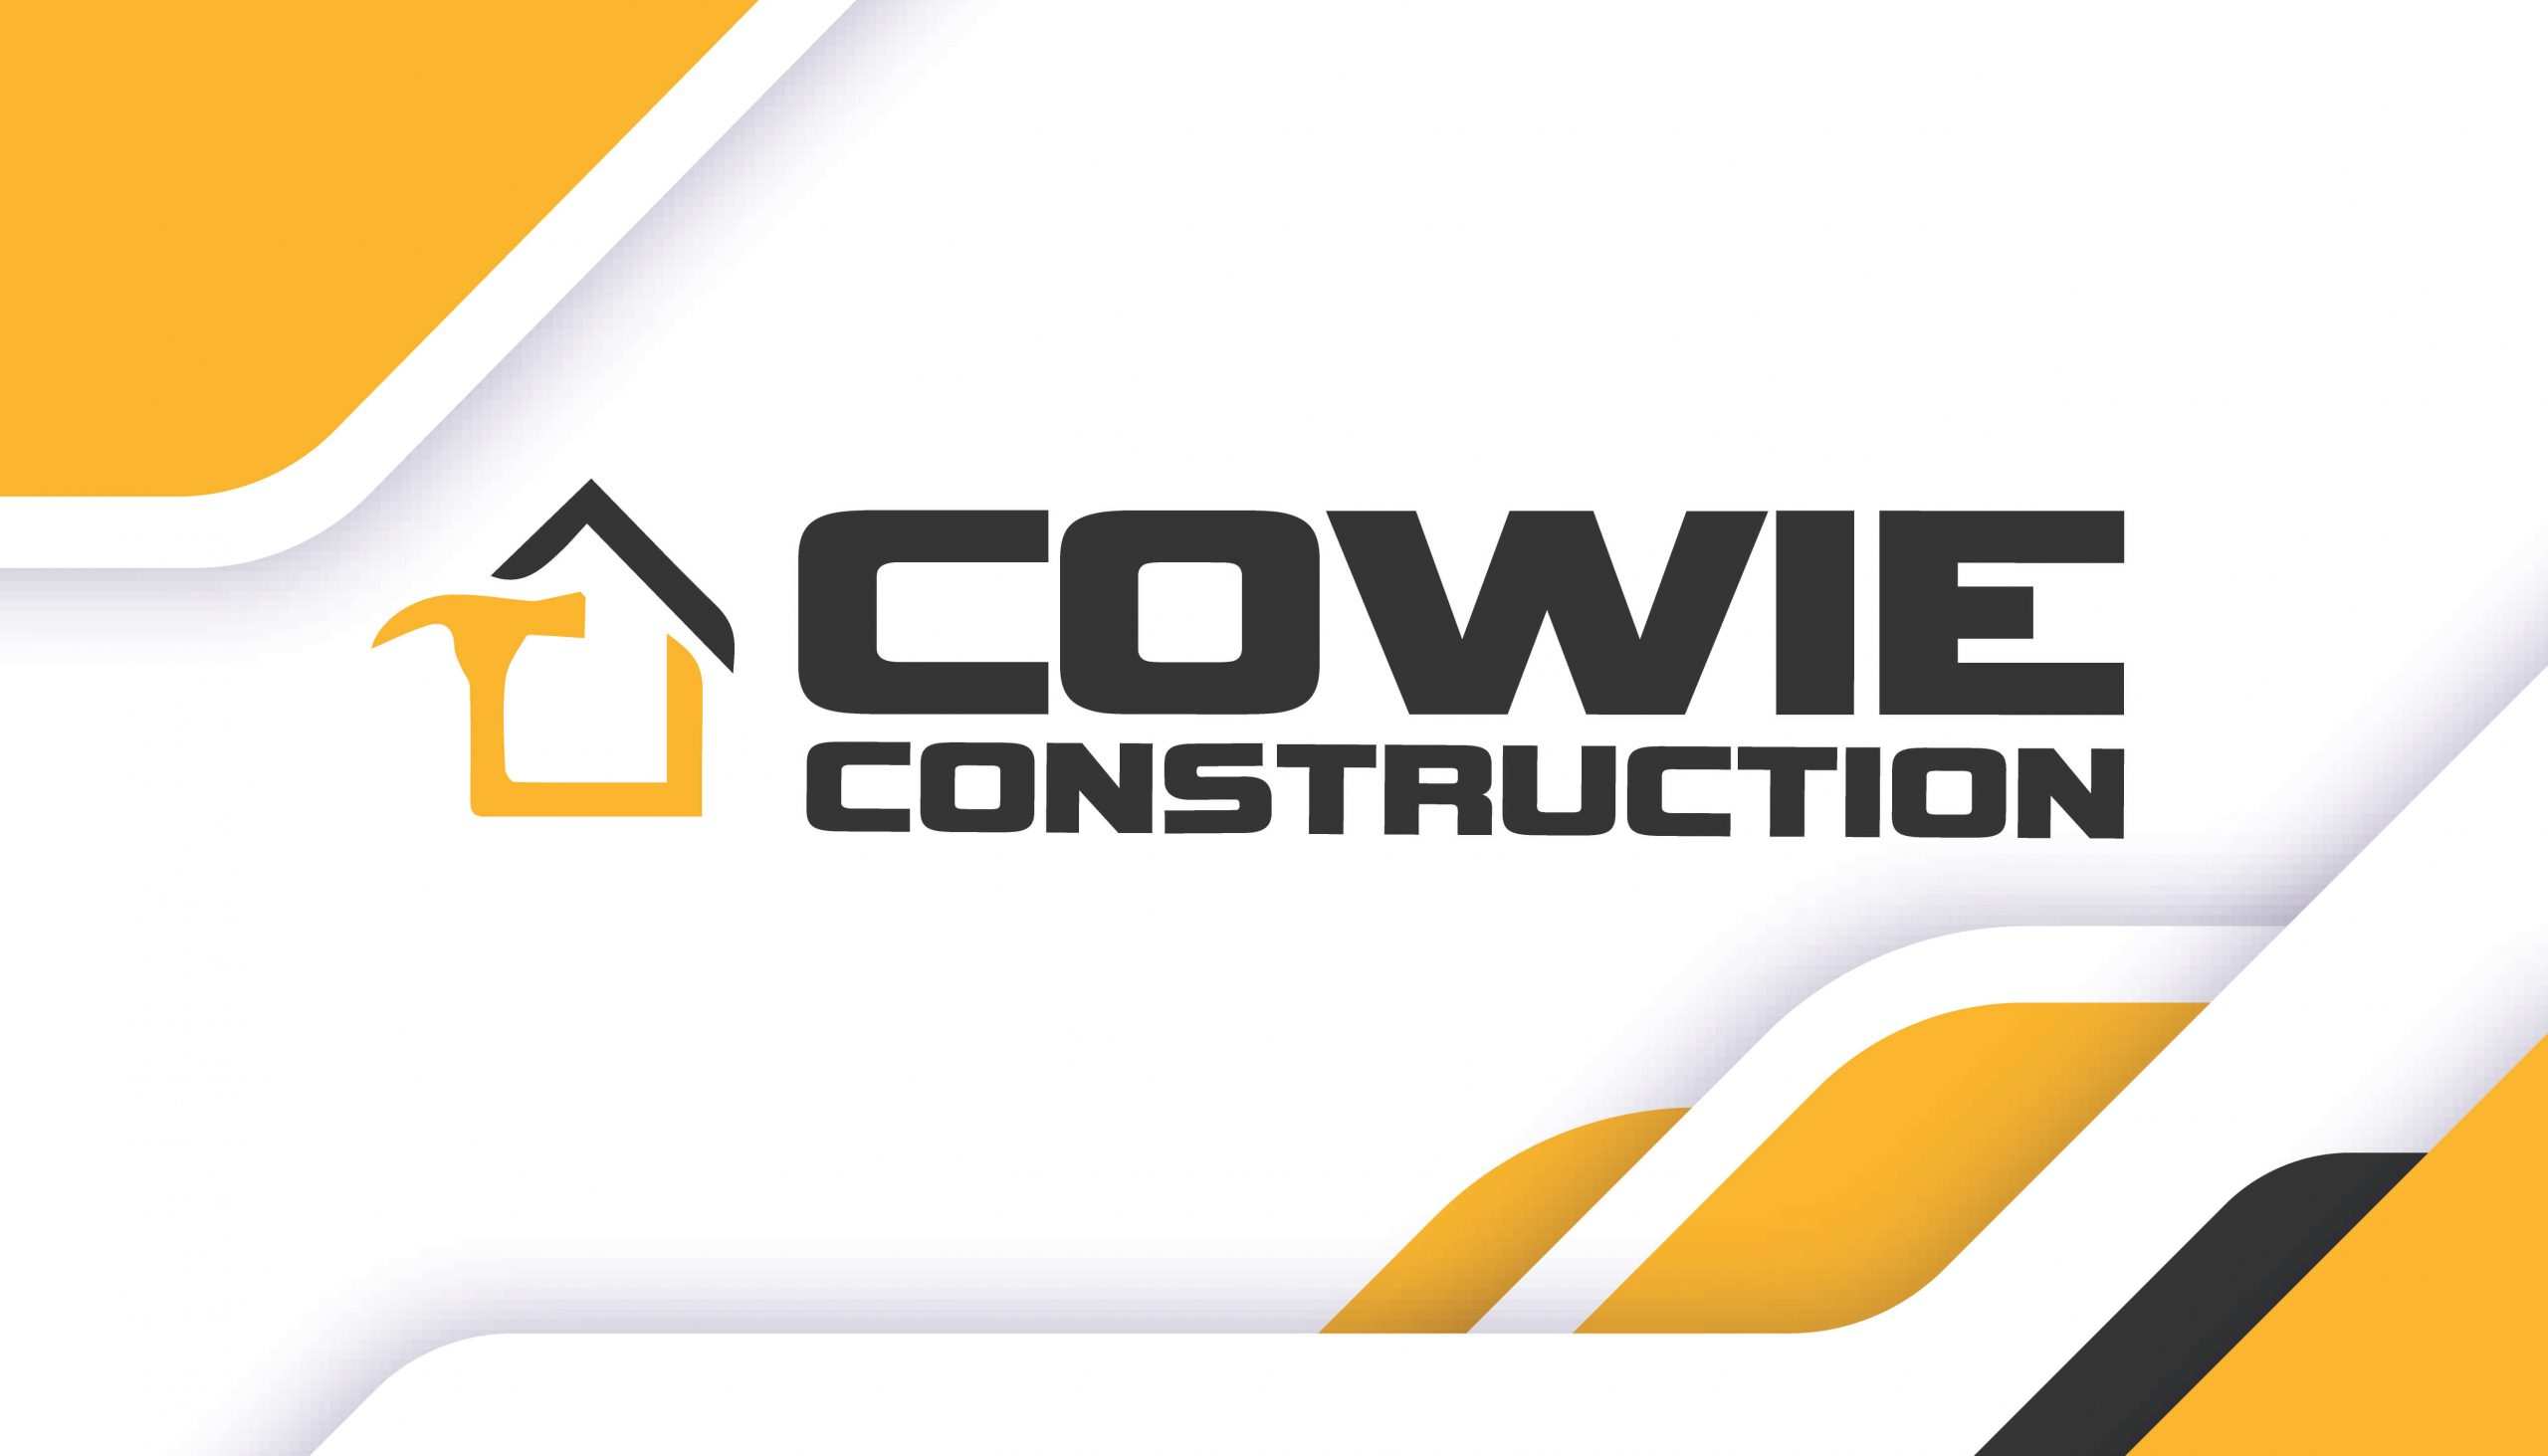 who is Cowie Construction